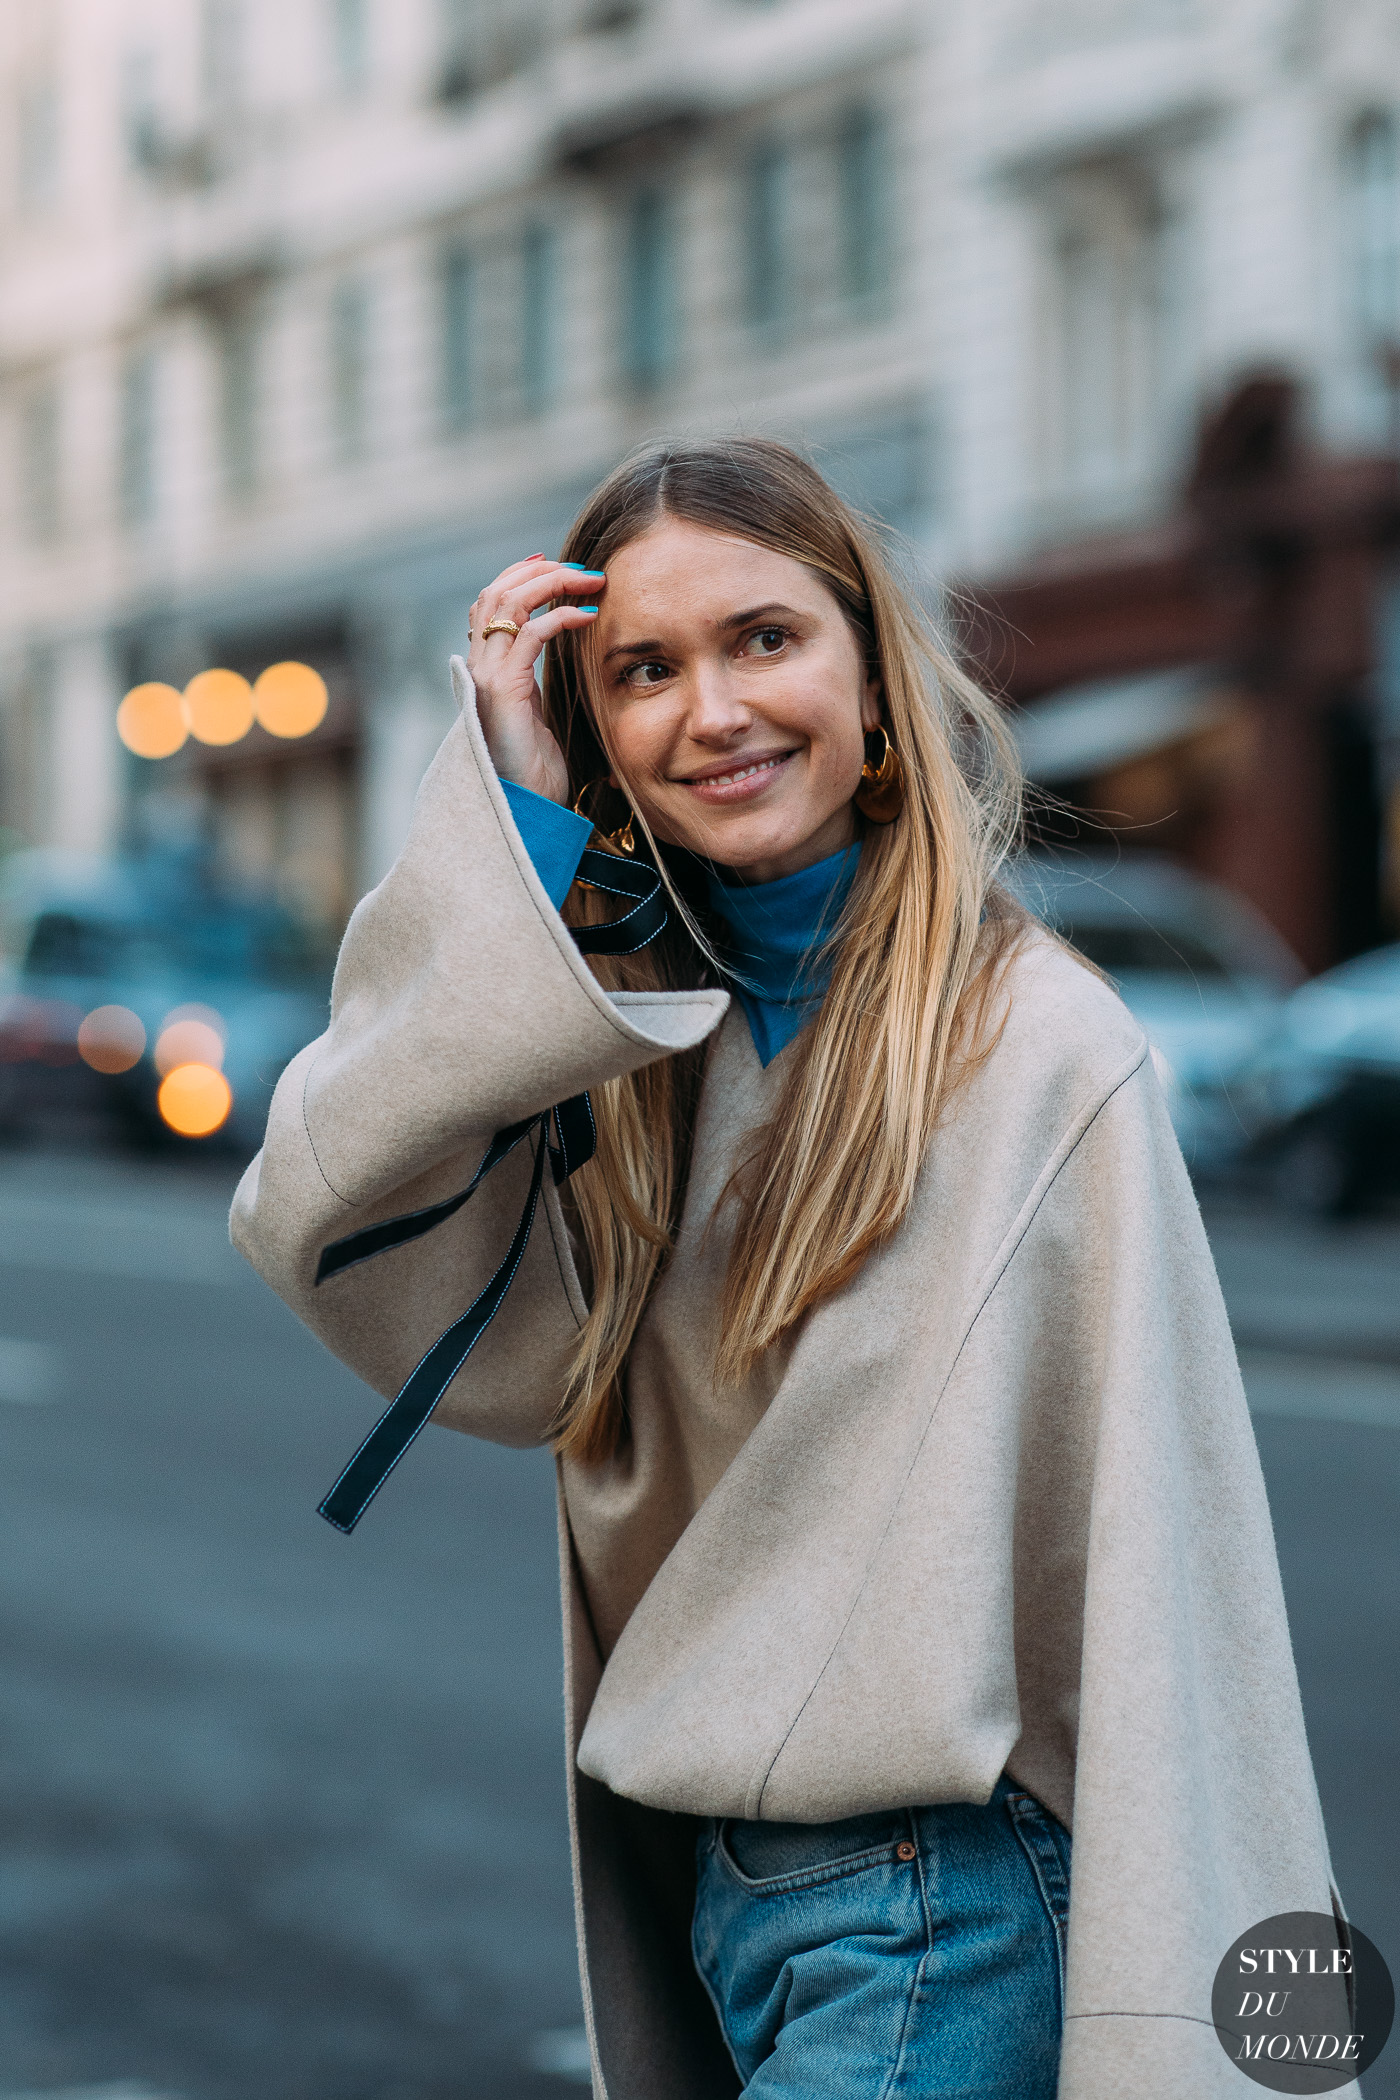 Pernille Teisbaek by STYLEDUMONDE Street Style Fashion Photography FW18 20180216_48A8622